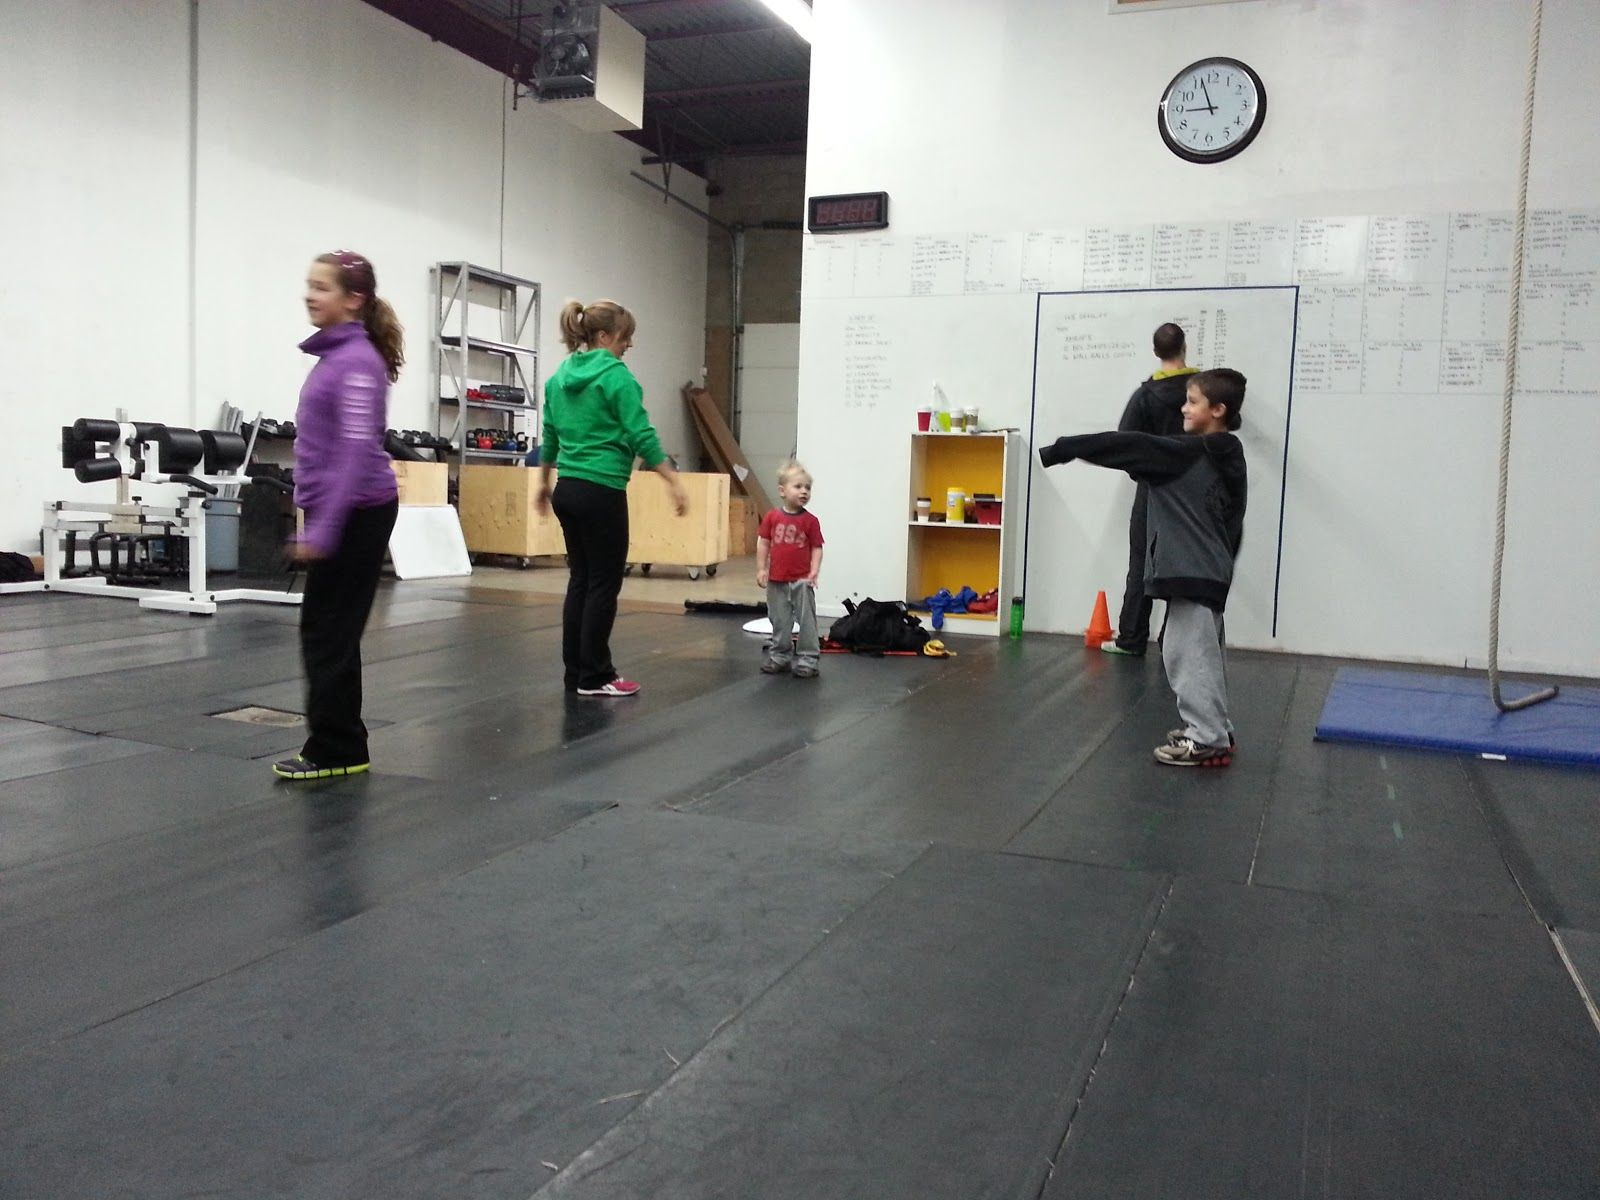 Iron Rogue: Review: Crossfit/Crossfit Kids at SquareOne Crossfit